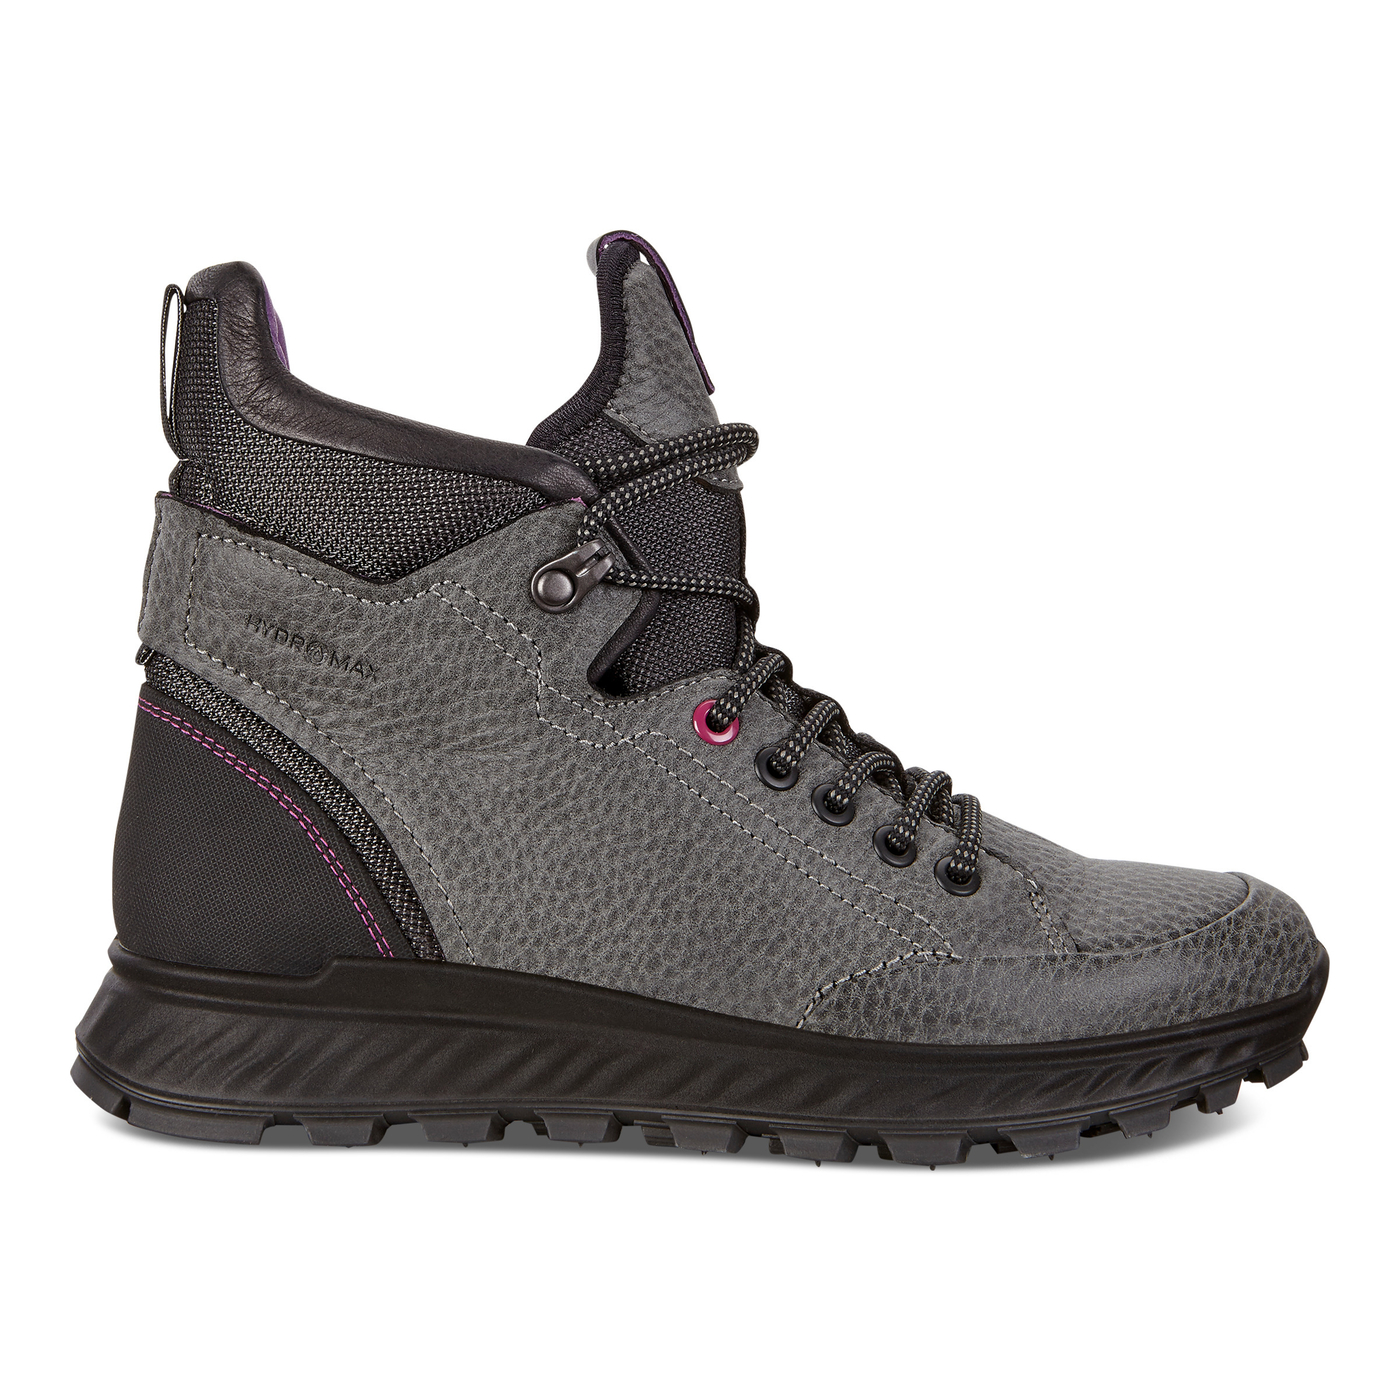 ECCO EXOSTRIKE L Shinebright Outdoor Ankle Boot HM